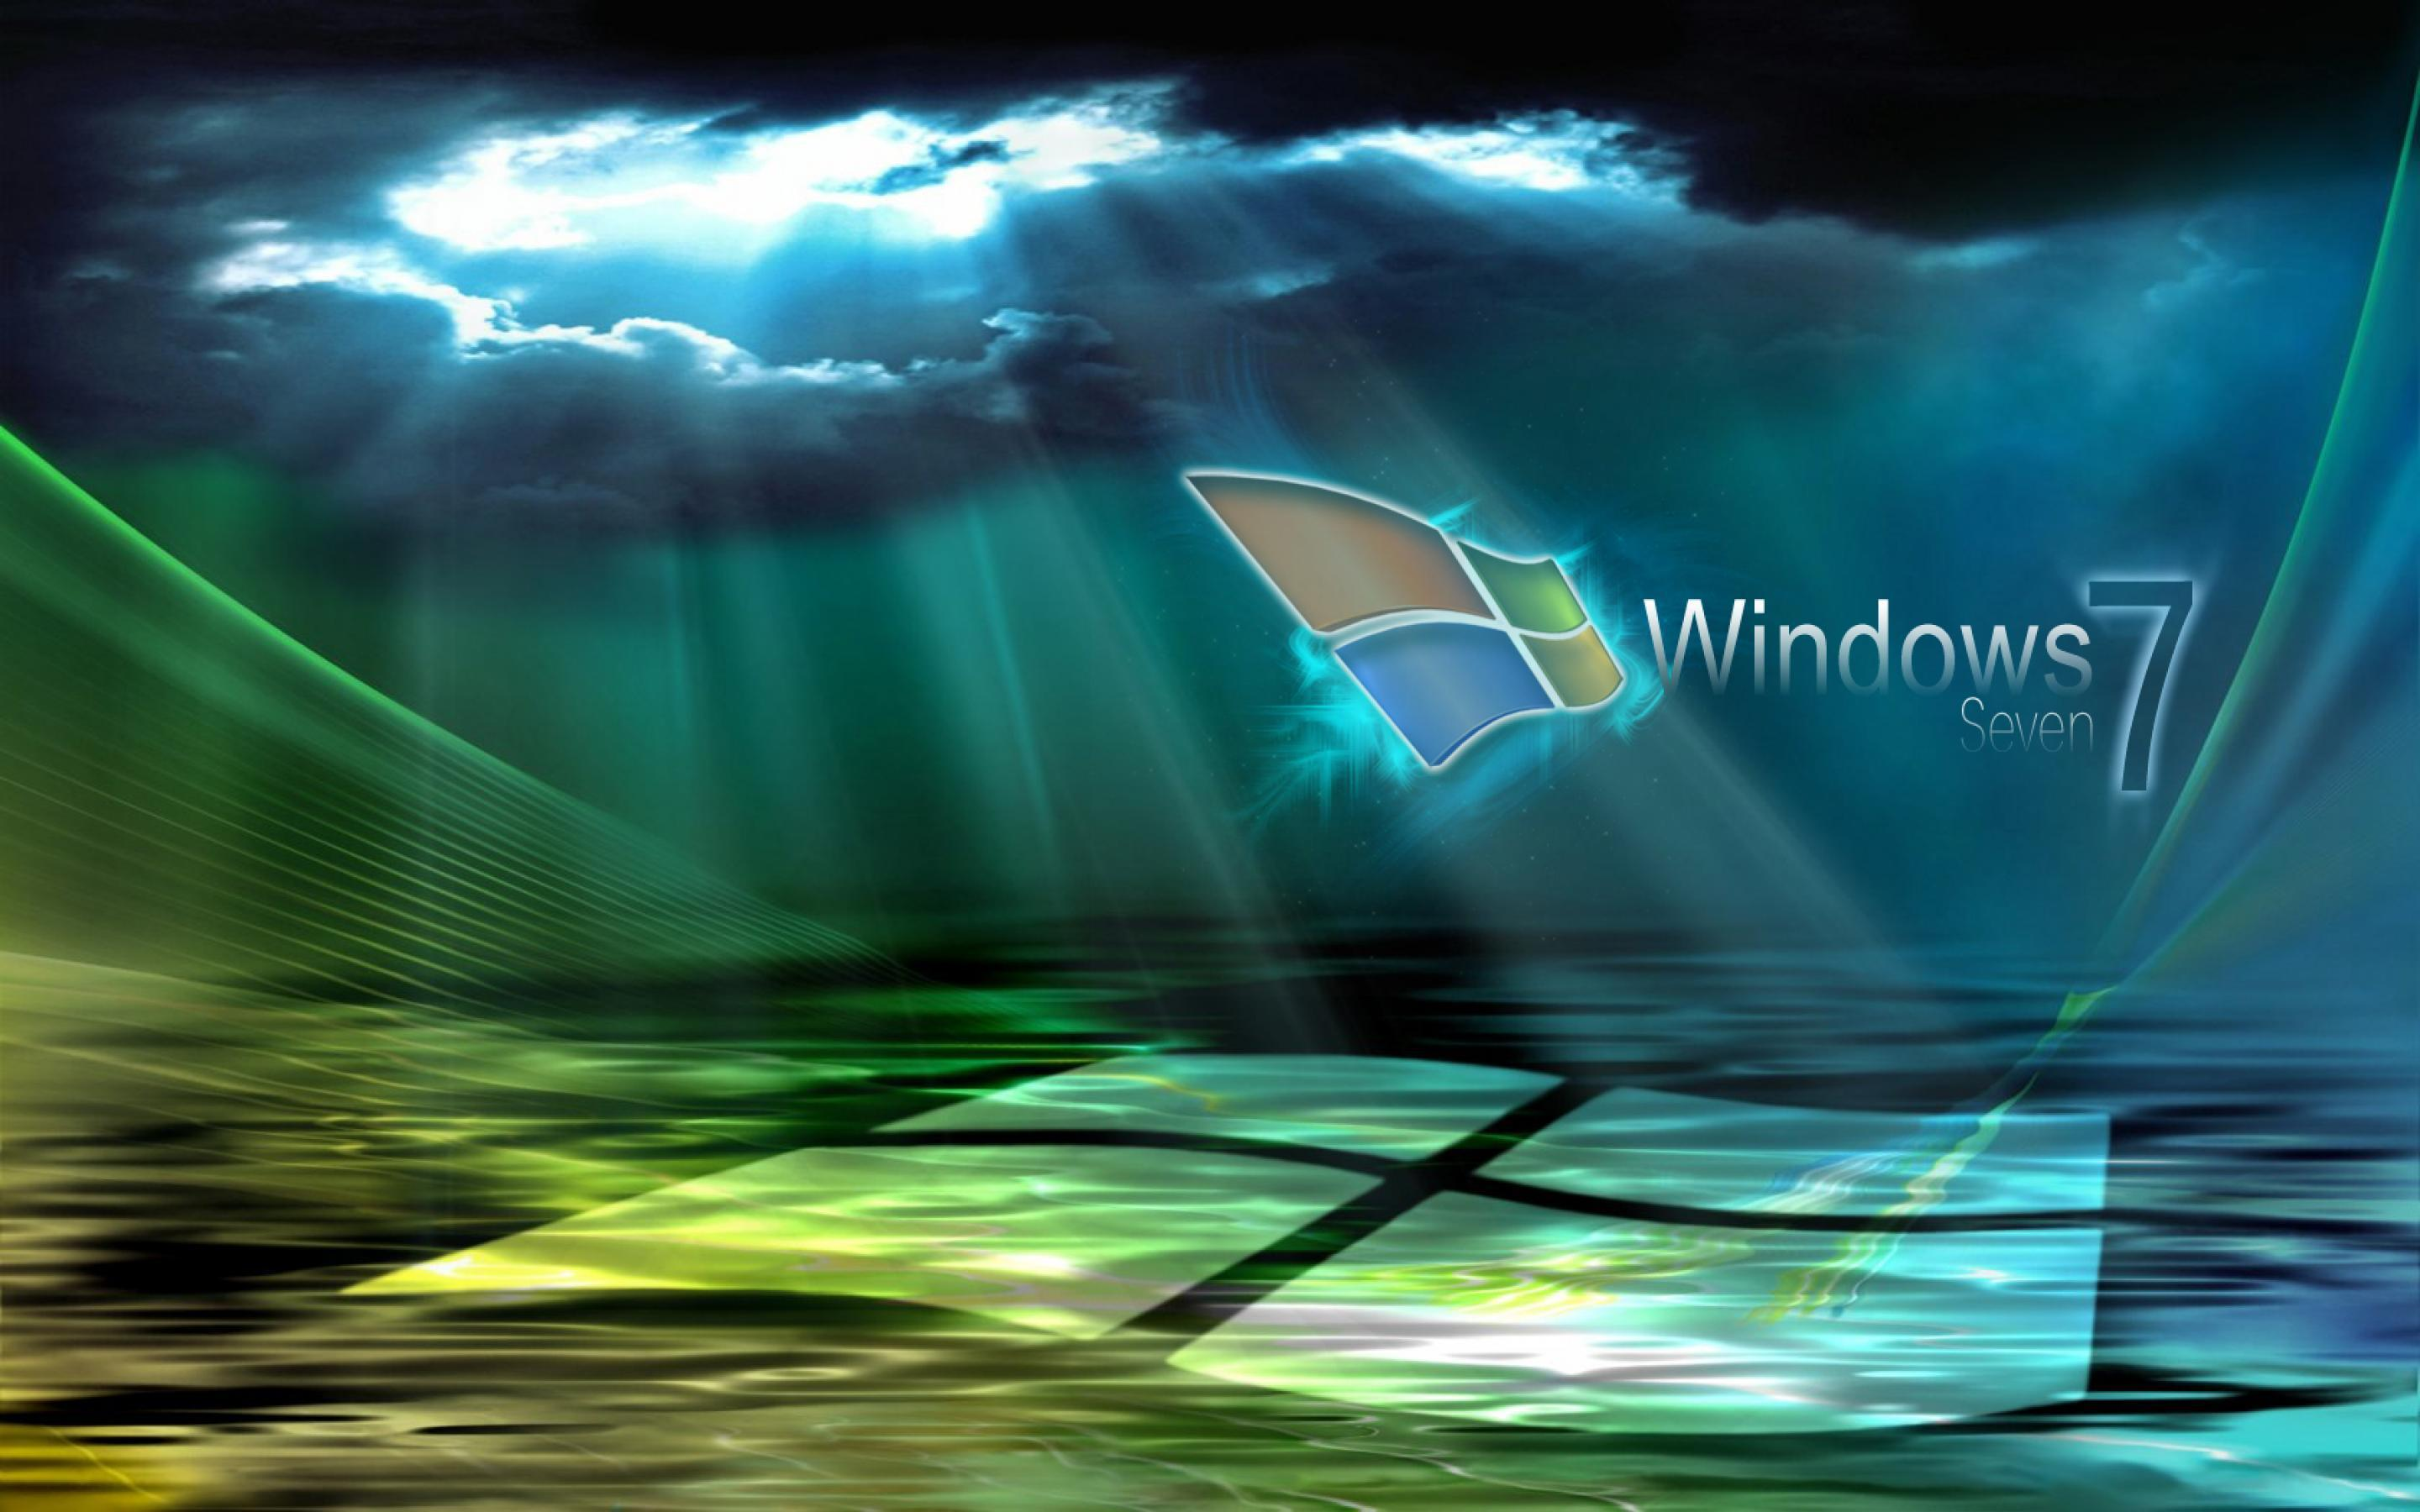 Cool Windows 7 HD Wallpaper #2260 | TanukinoSippo.